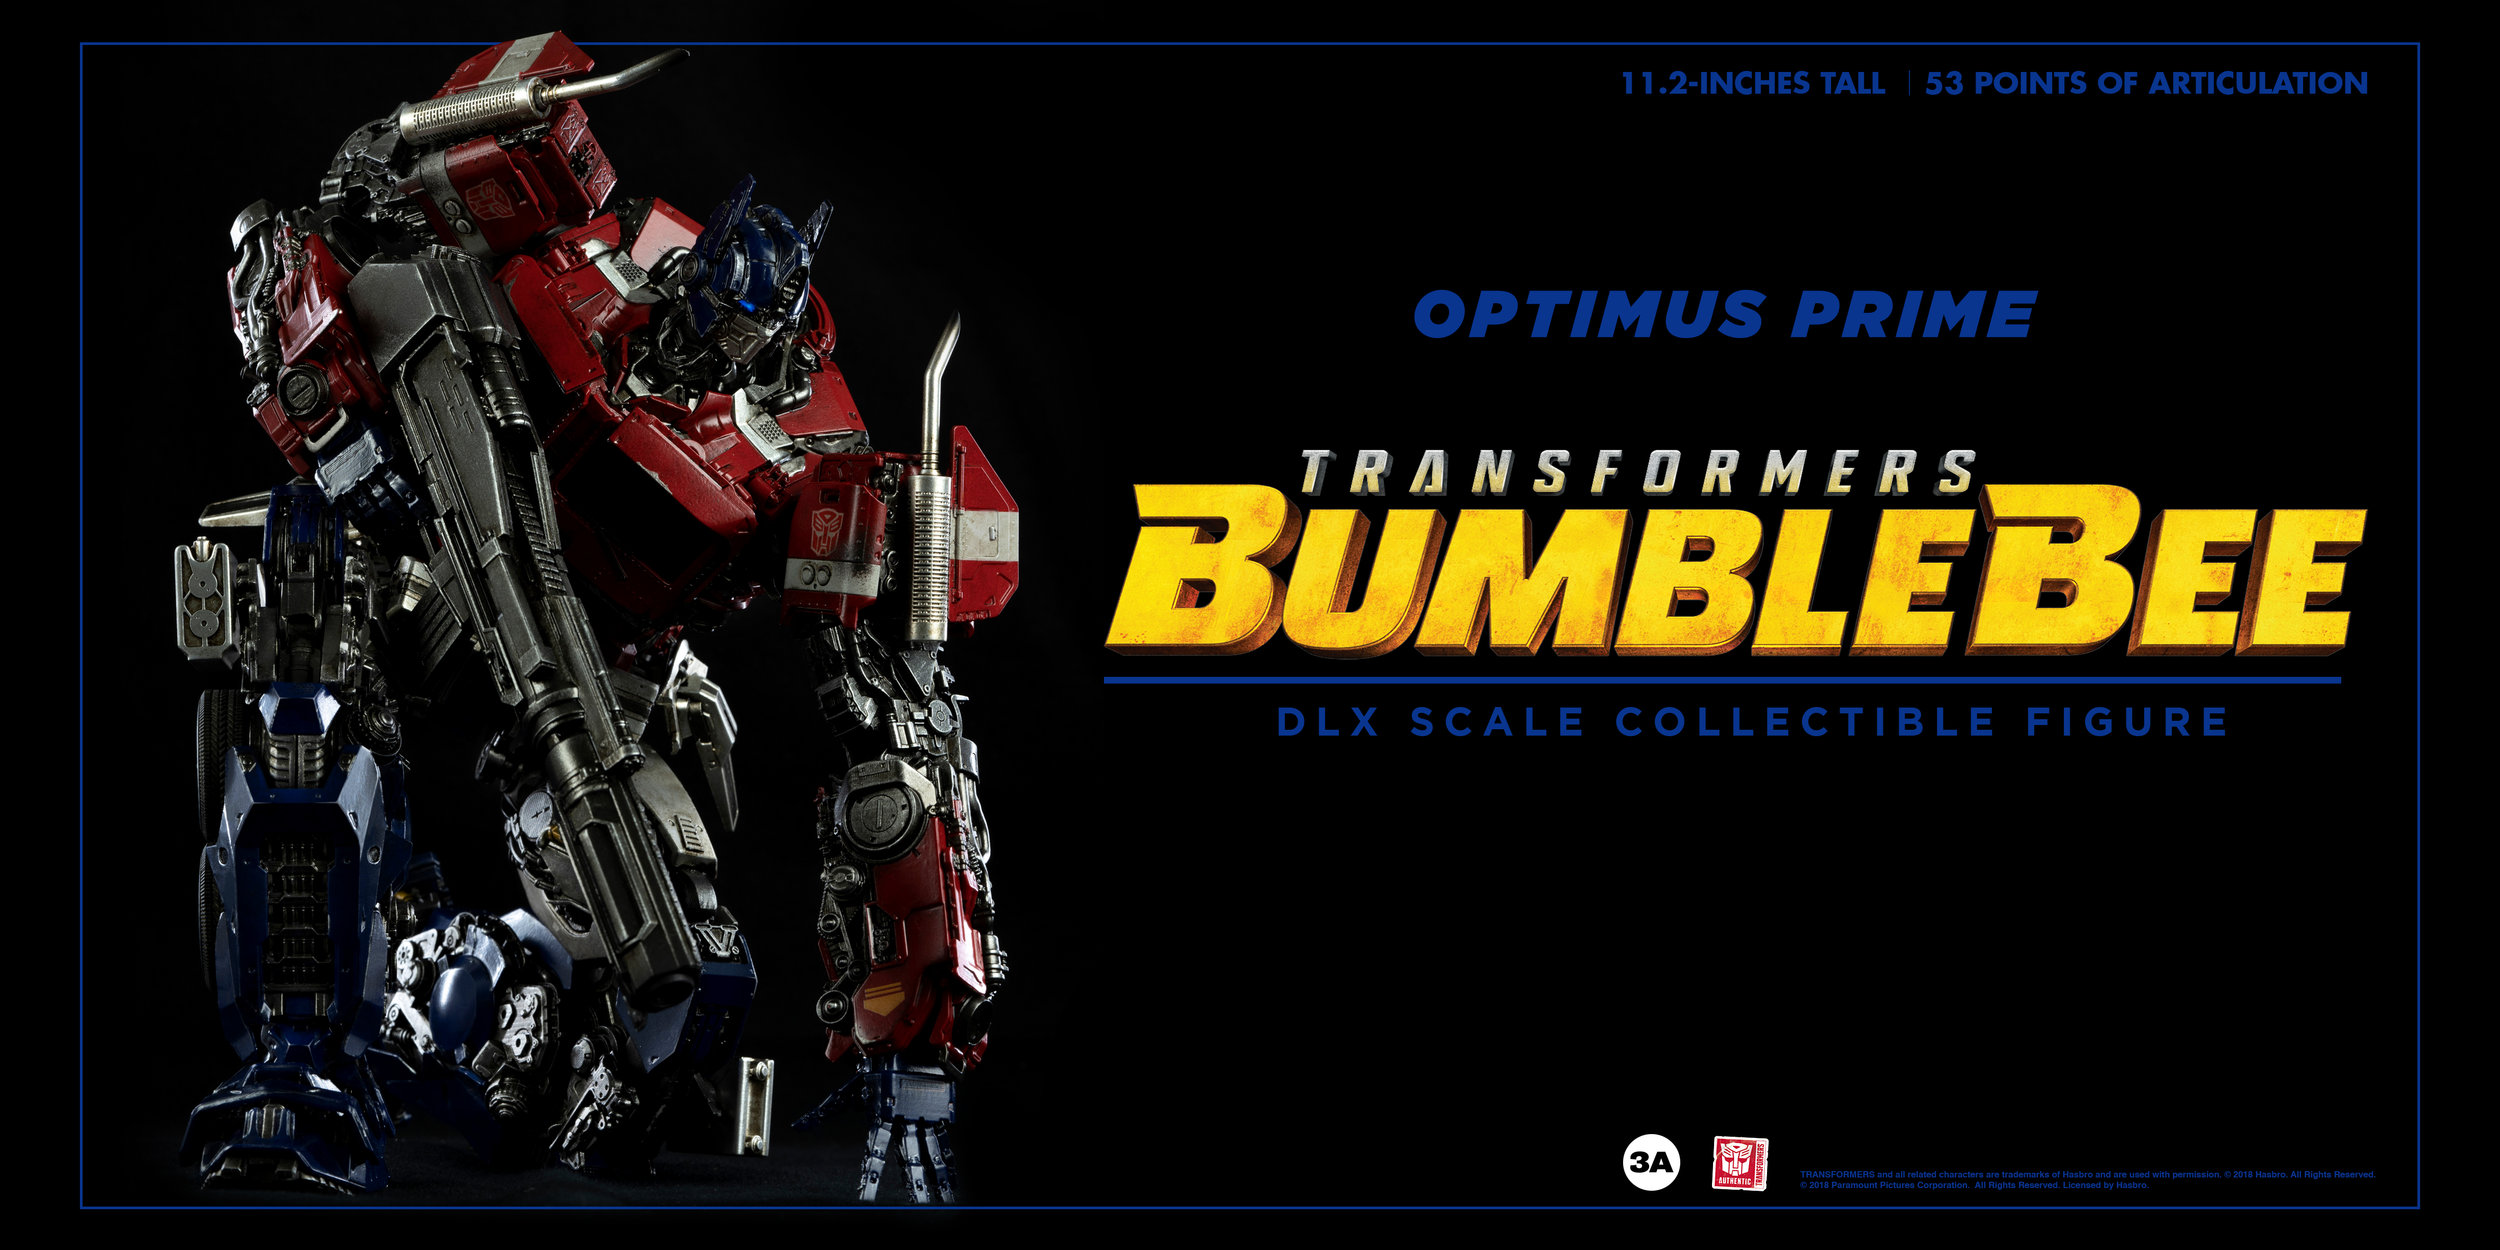 OPTIMUS PRIME - DLX Scale Collectible Figure2nd Batch coming June 17th, 9:00am, HKT